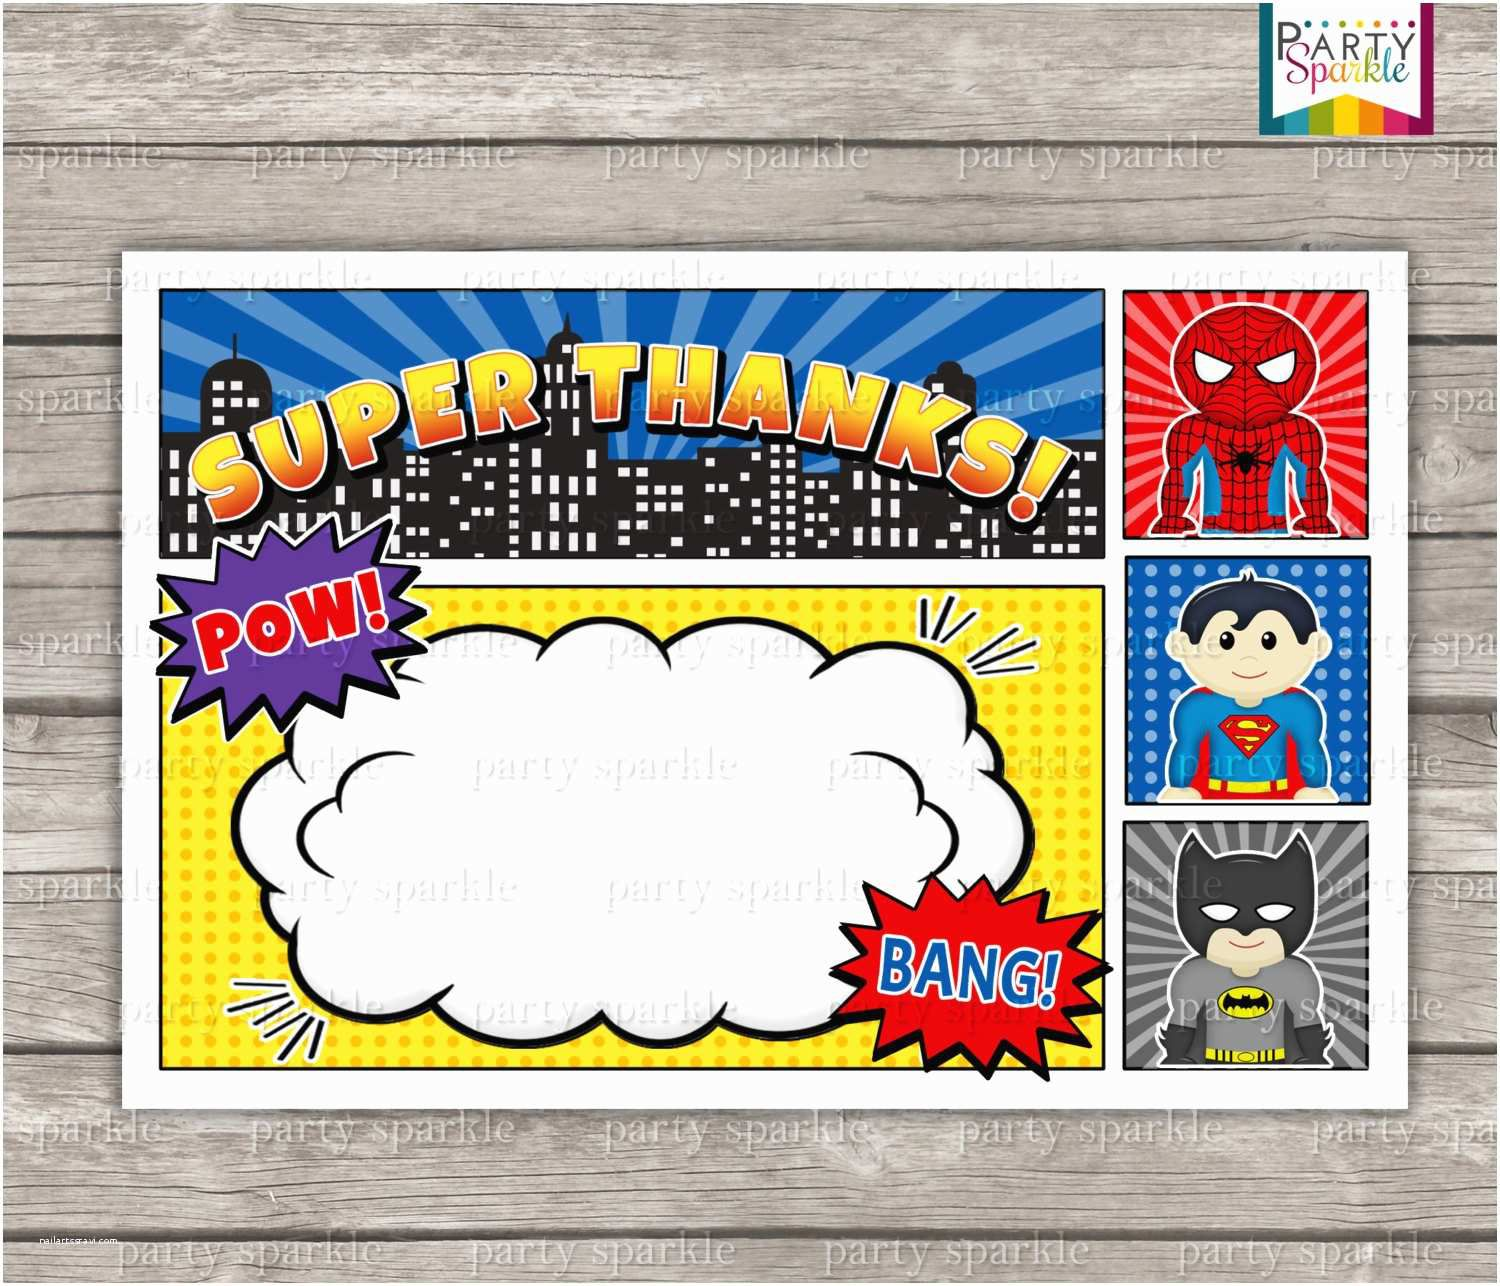 006 Remarkable Superhero Invitation Template Free Picture  Baby Shower Newspaper Birthday PartyFull